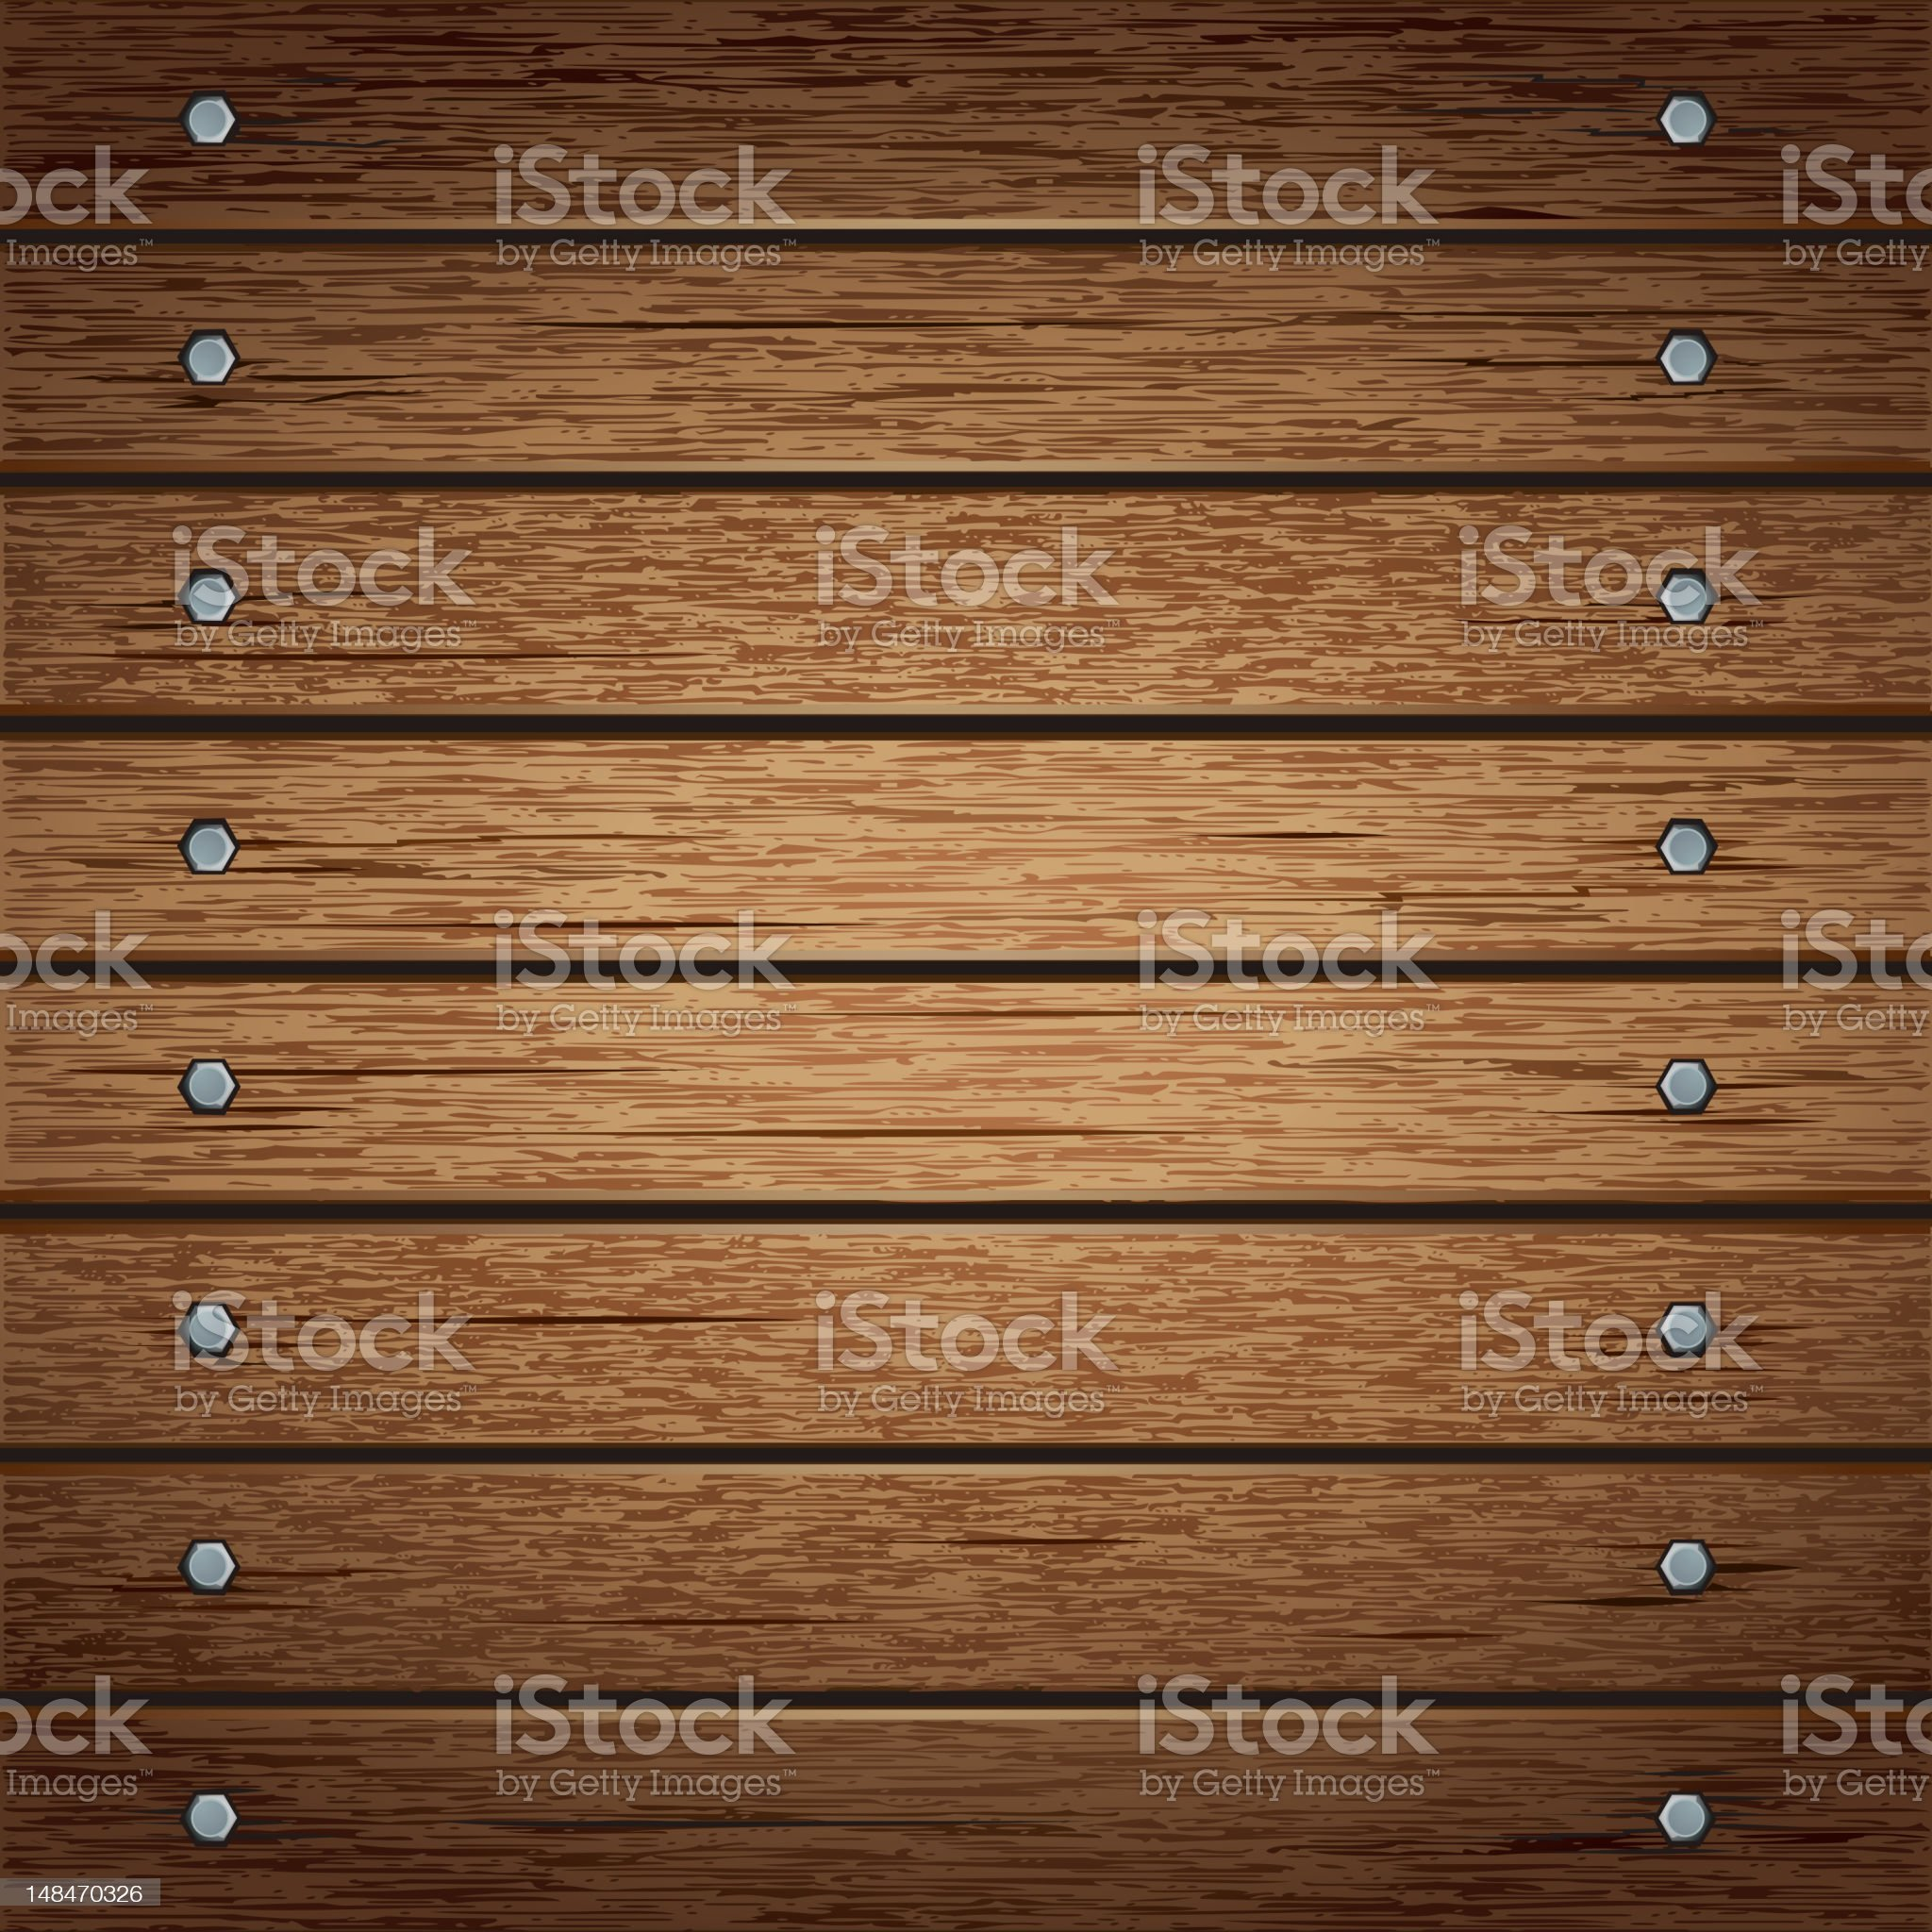 Wooden panel background. royalty-free stock vector art